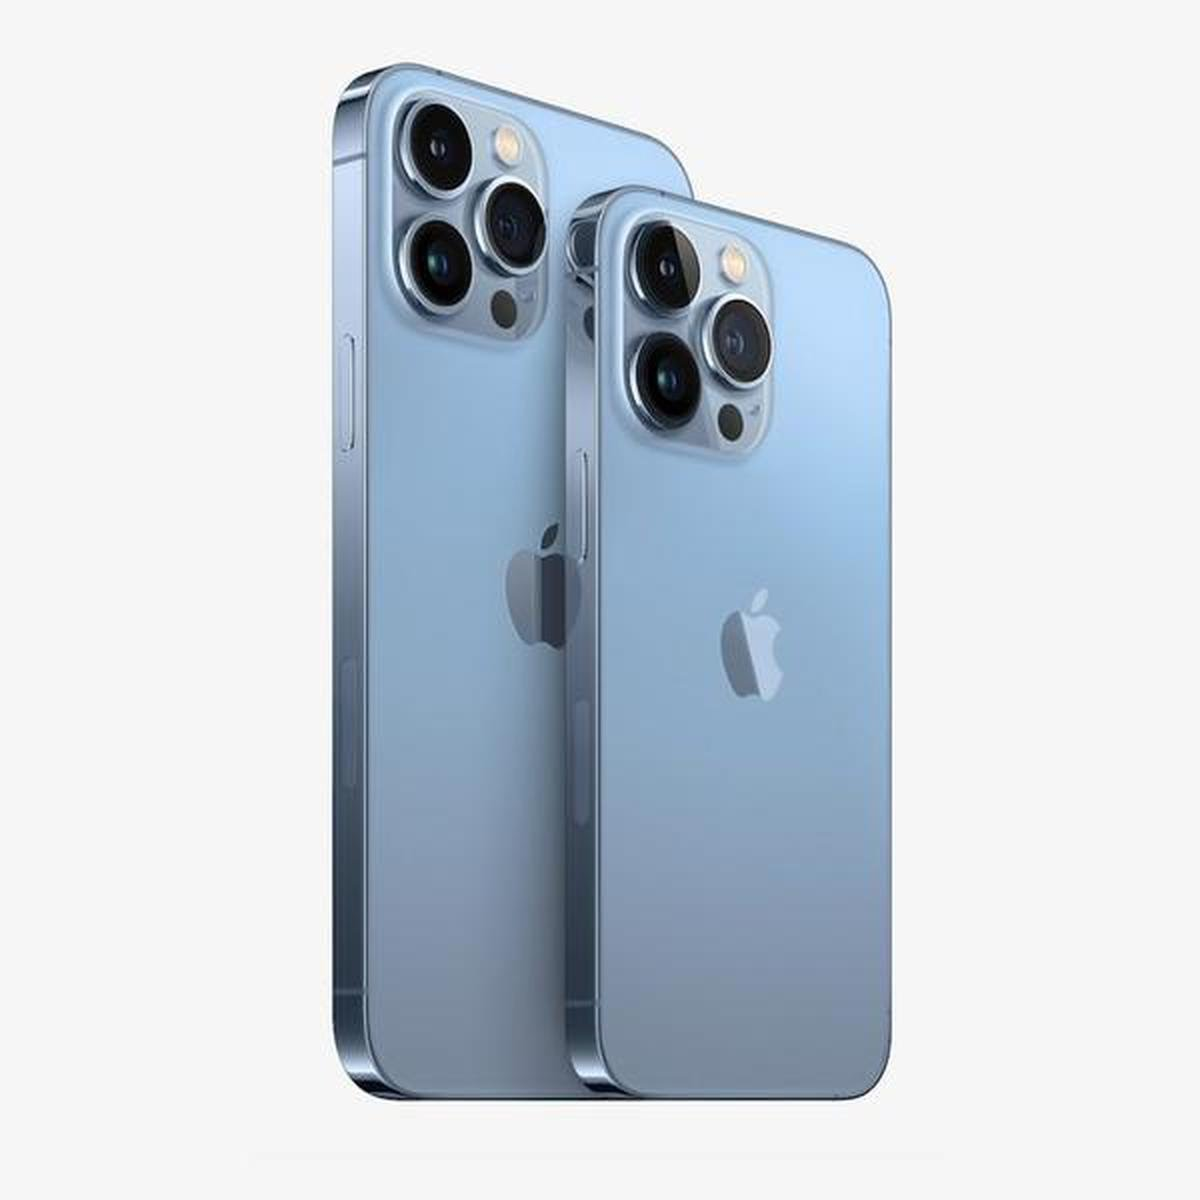 The back of the iPhone 13 Pro and Pro Max in Sierra Blue